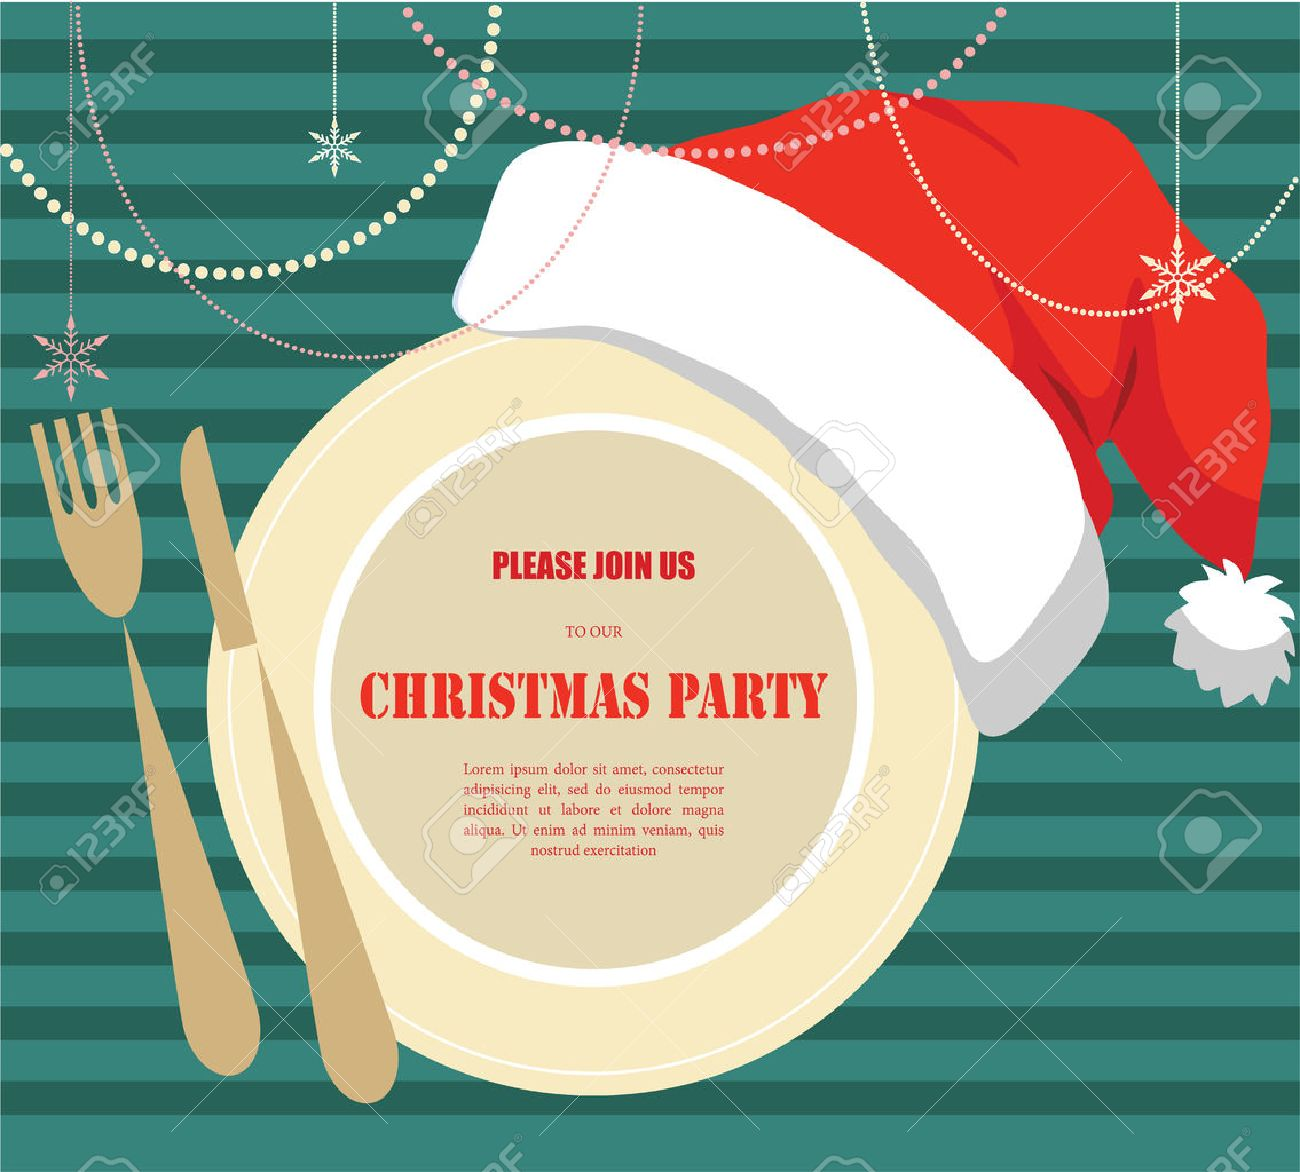 Christmas Party Invitation, Plate With Christmas Hat Royalty Free ...